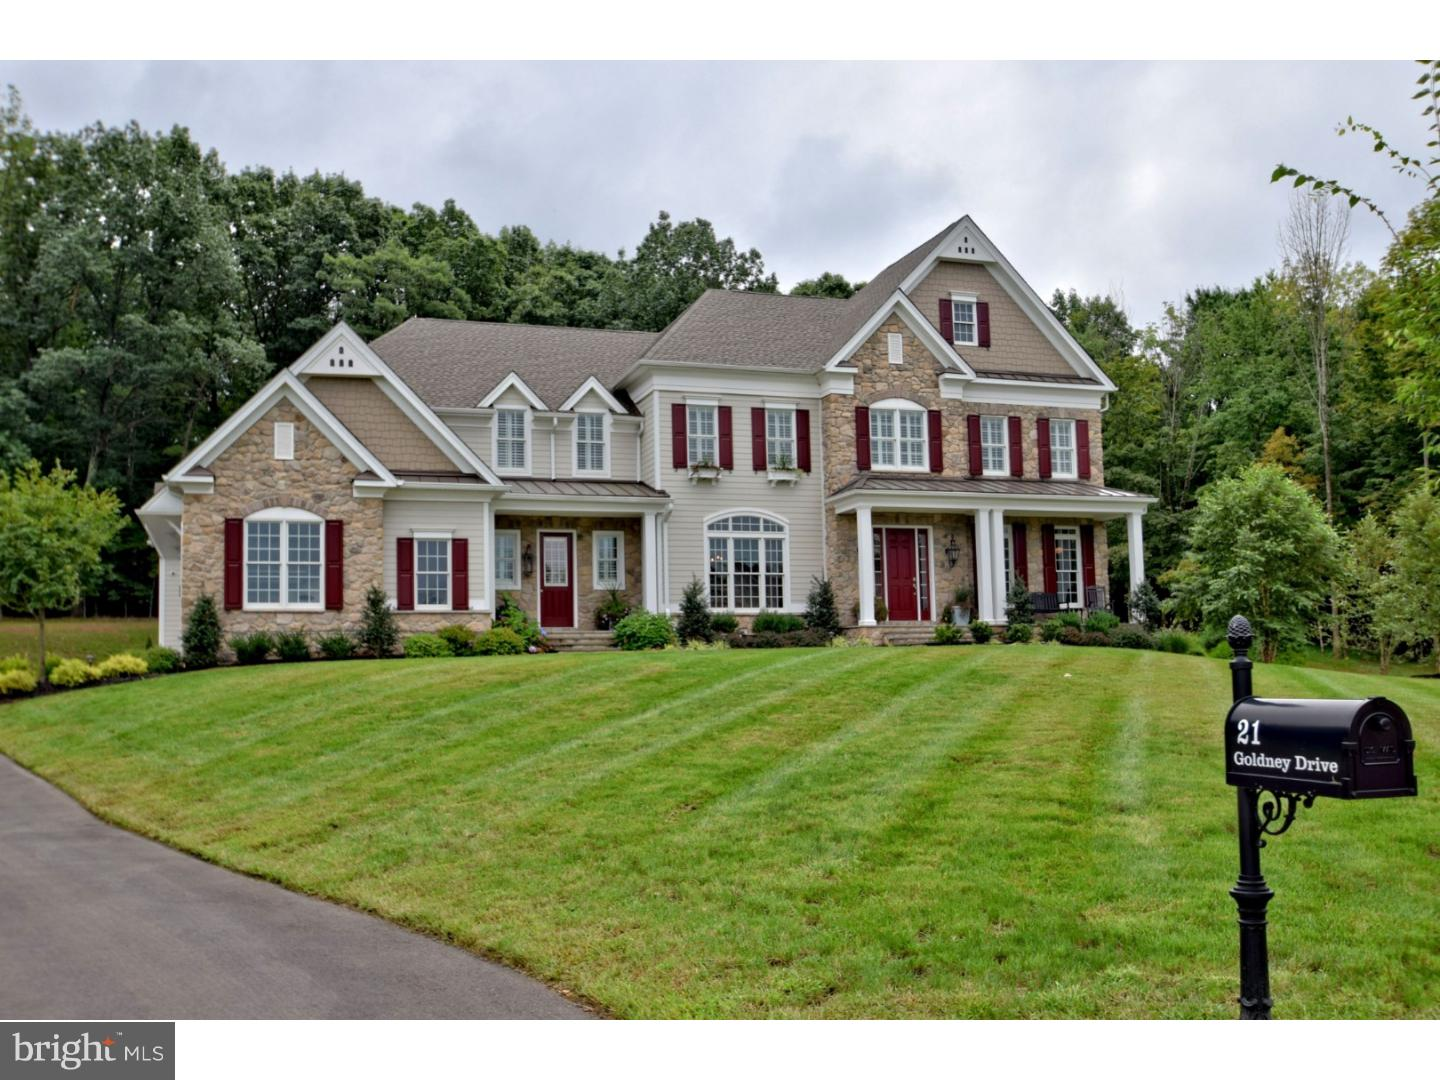 Single Family Home for Sale at 21 GOLDNEY Drive Newtown, Pennsylvania 18940 United States